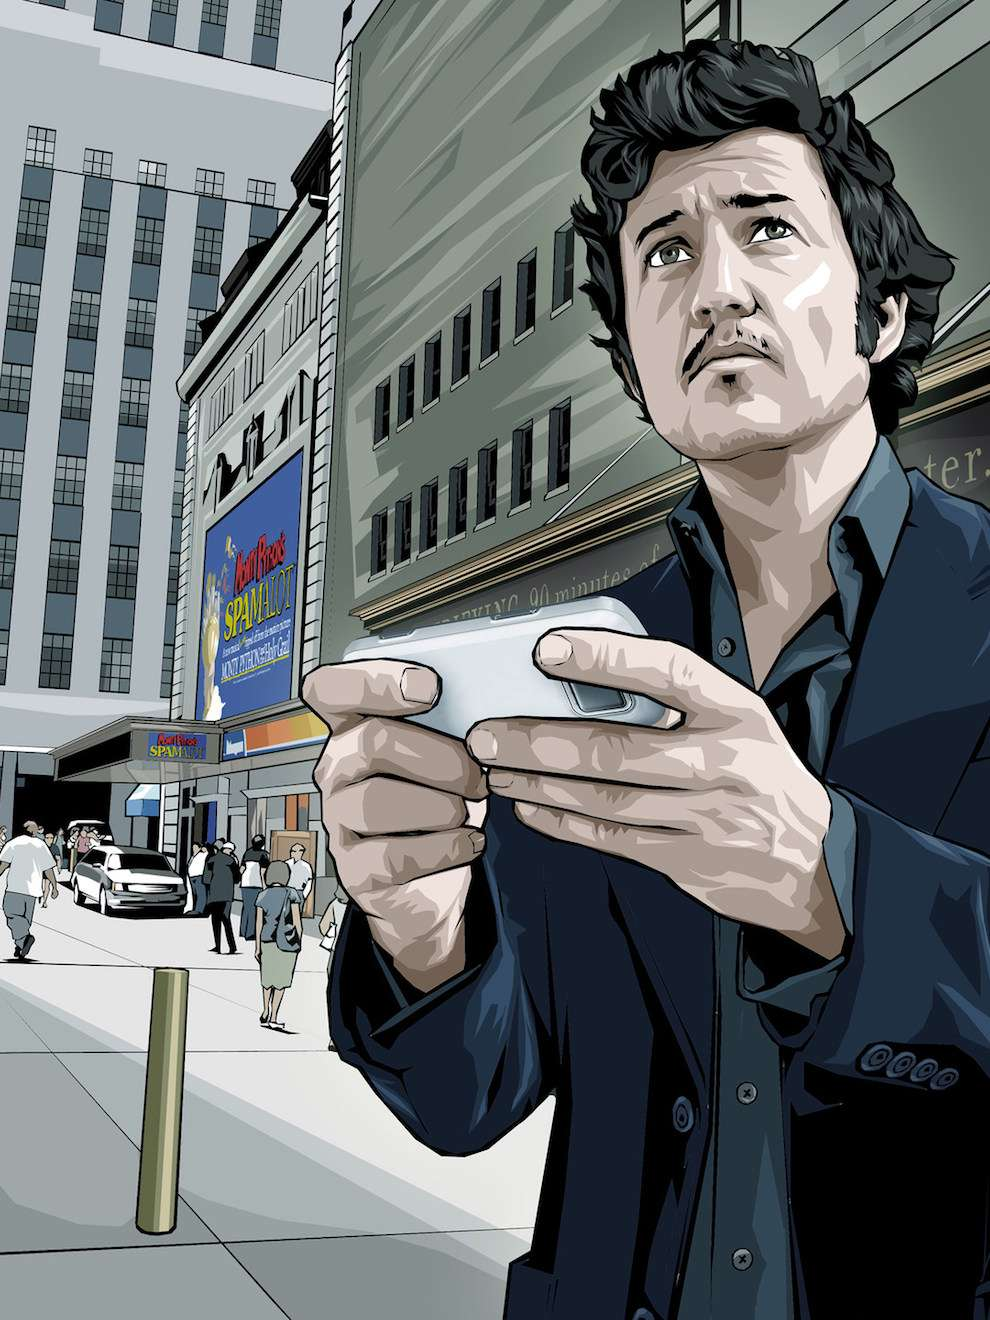 Benjamin Wachenje, Photorealistic illustration of a man holding a phone for an advertising